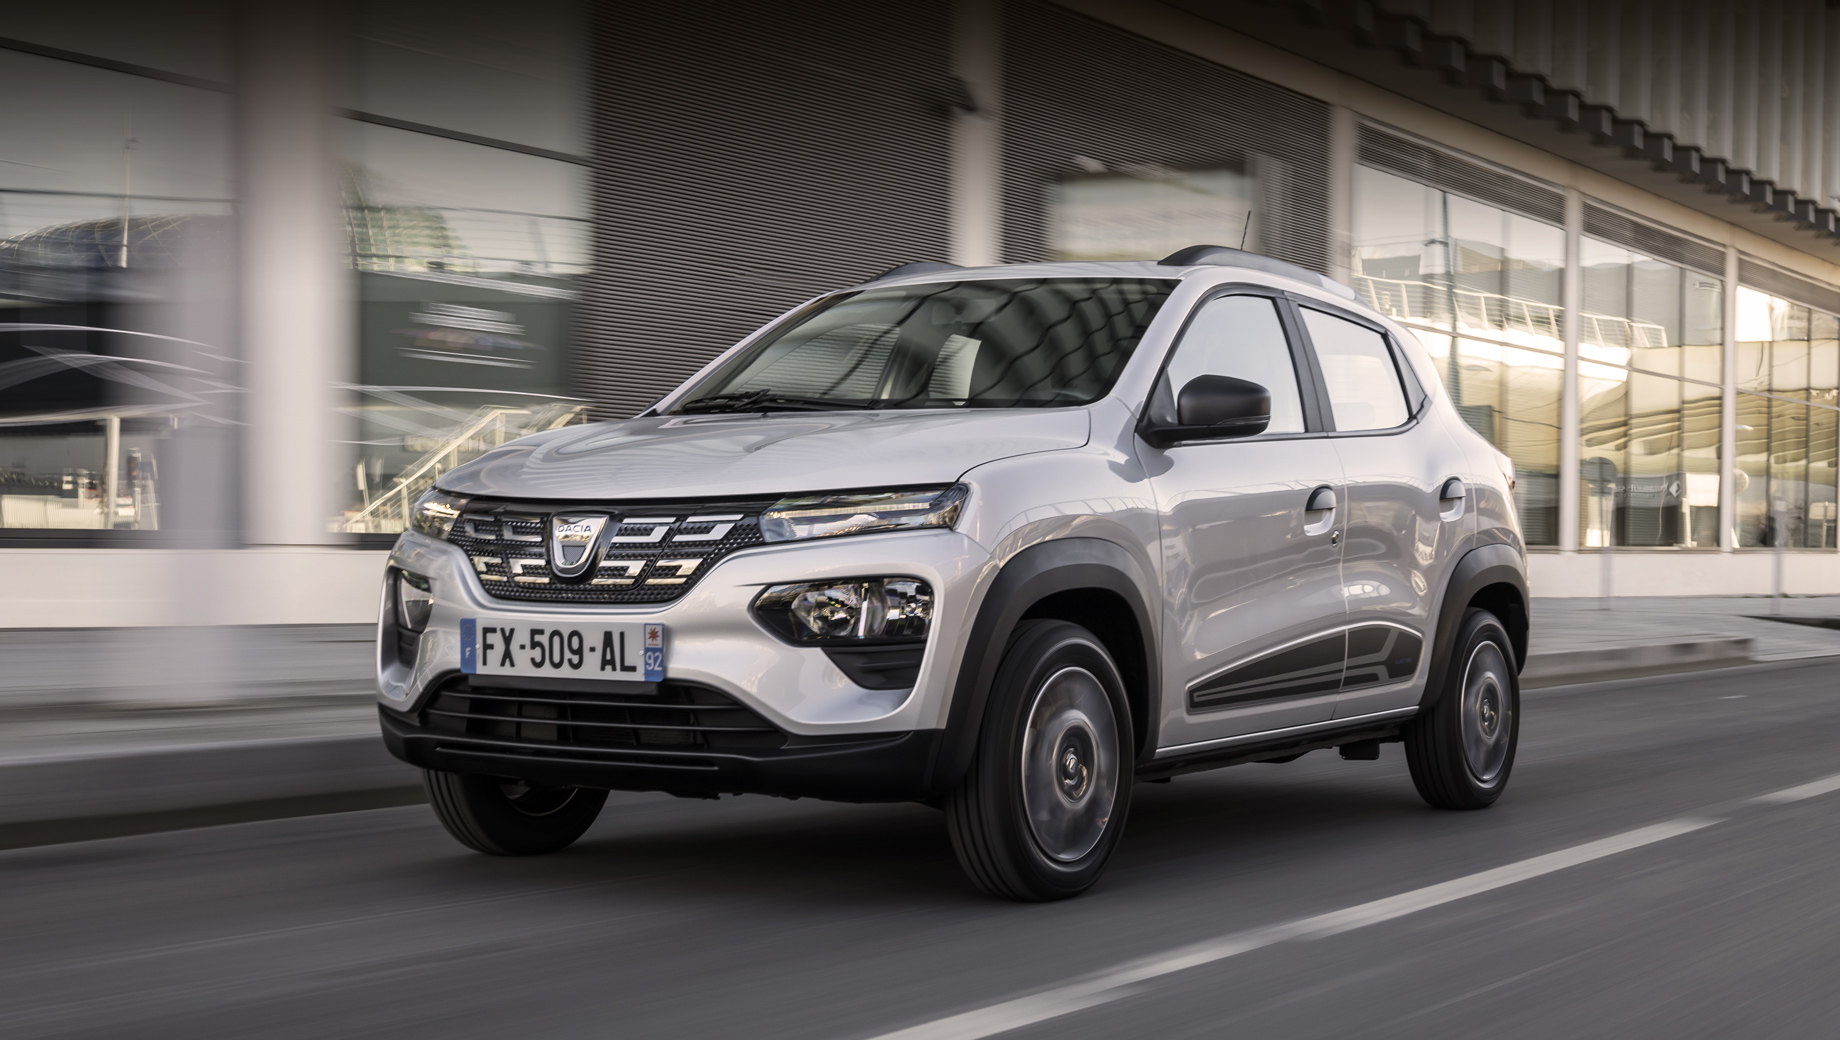 Dacia dealerships in Europe will be opening pre-order books for the Spring EV compact on May 20, 2021. In the meantime, the specs announced last October have been improved across the board.